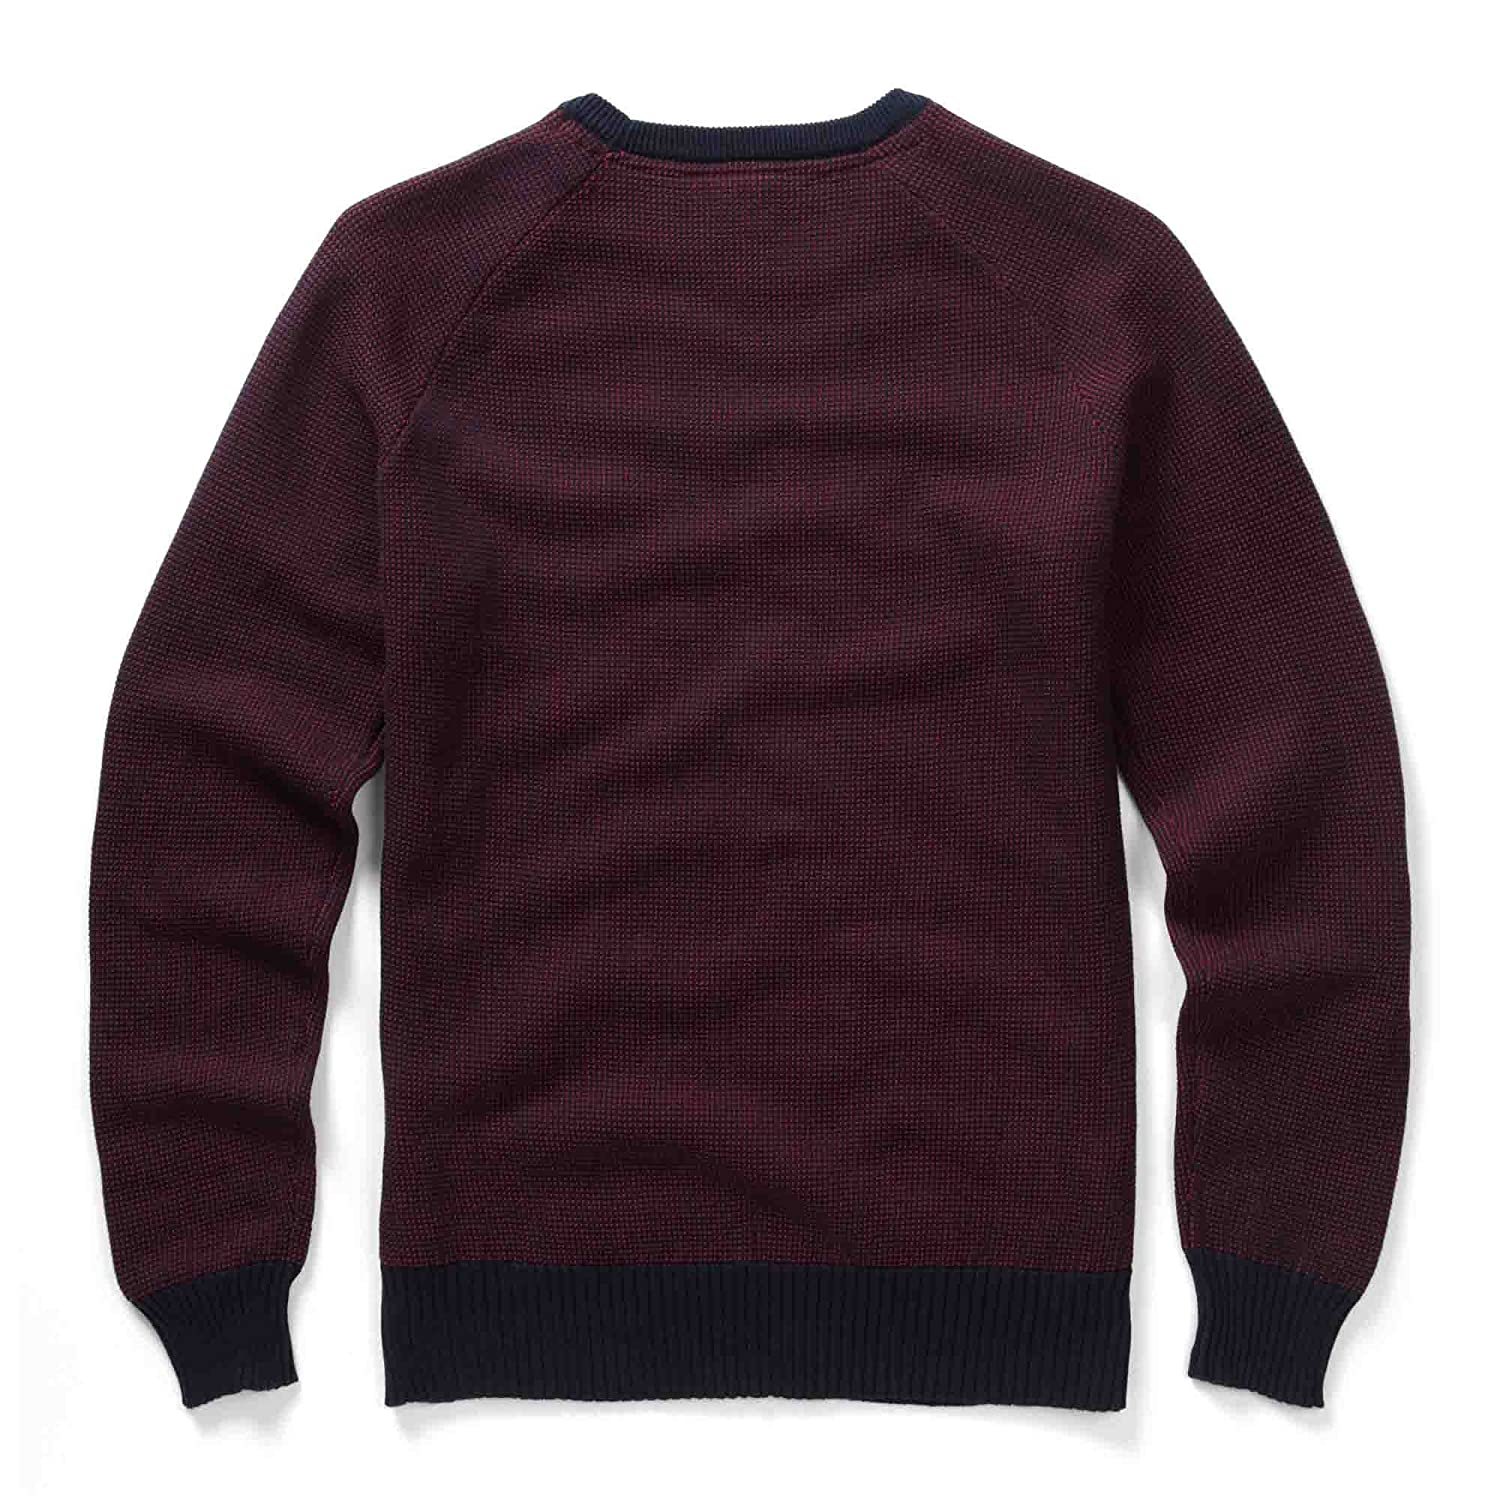 883 Police Holt Red Mens Pullover Knitwear Jumper Sweater Long Sleeve Crew Neck